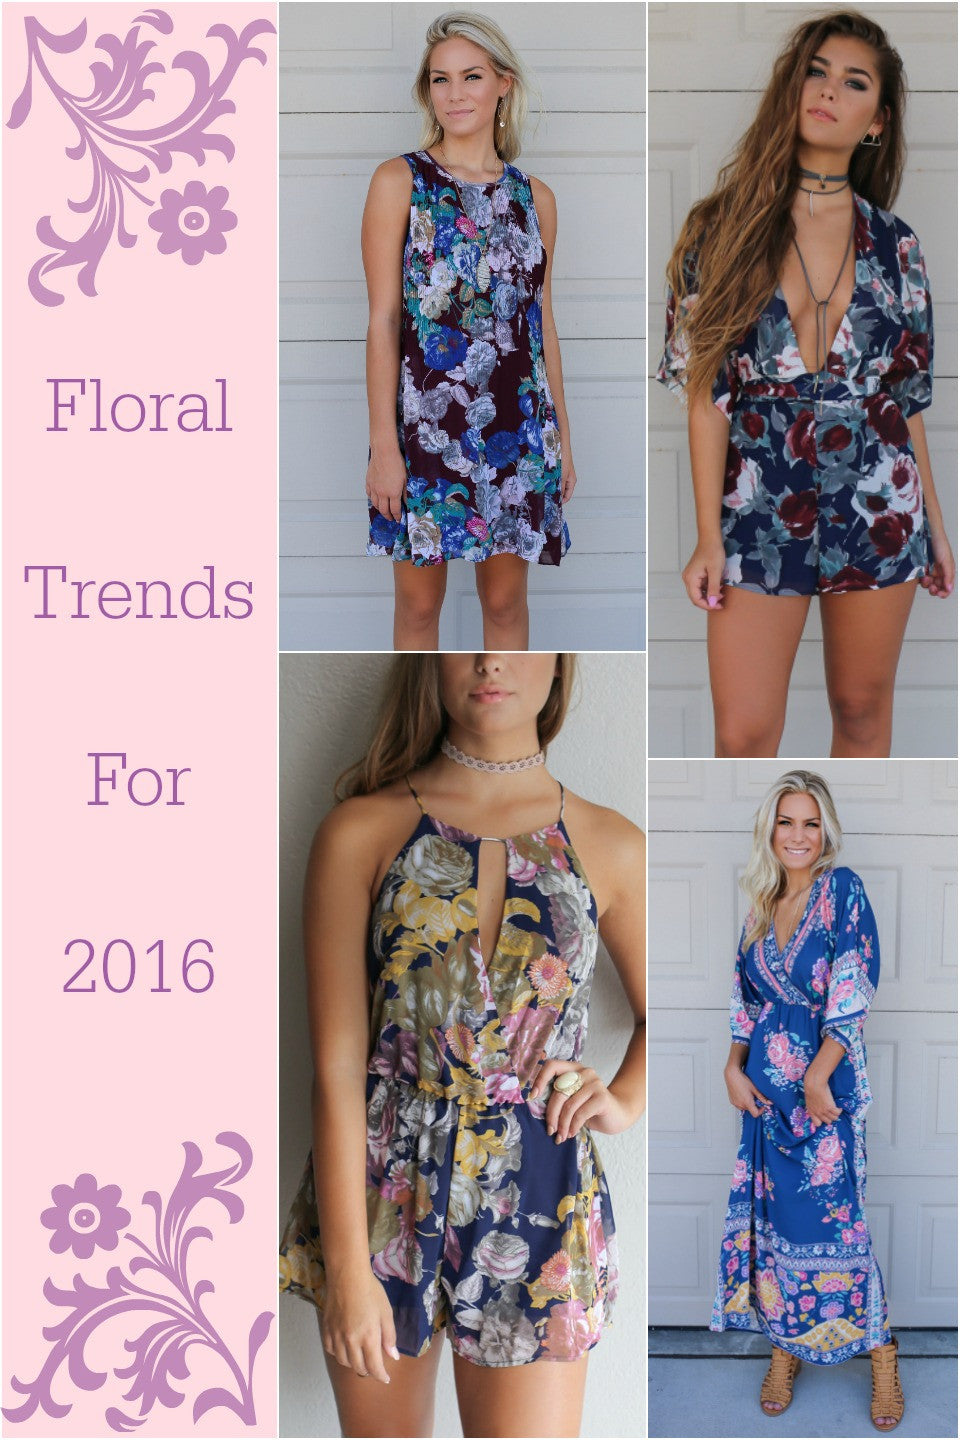 Floral Trends for 2016